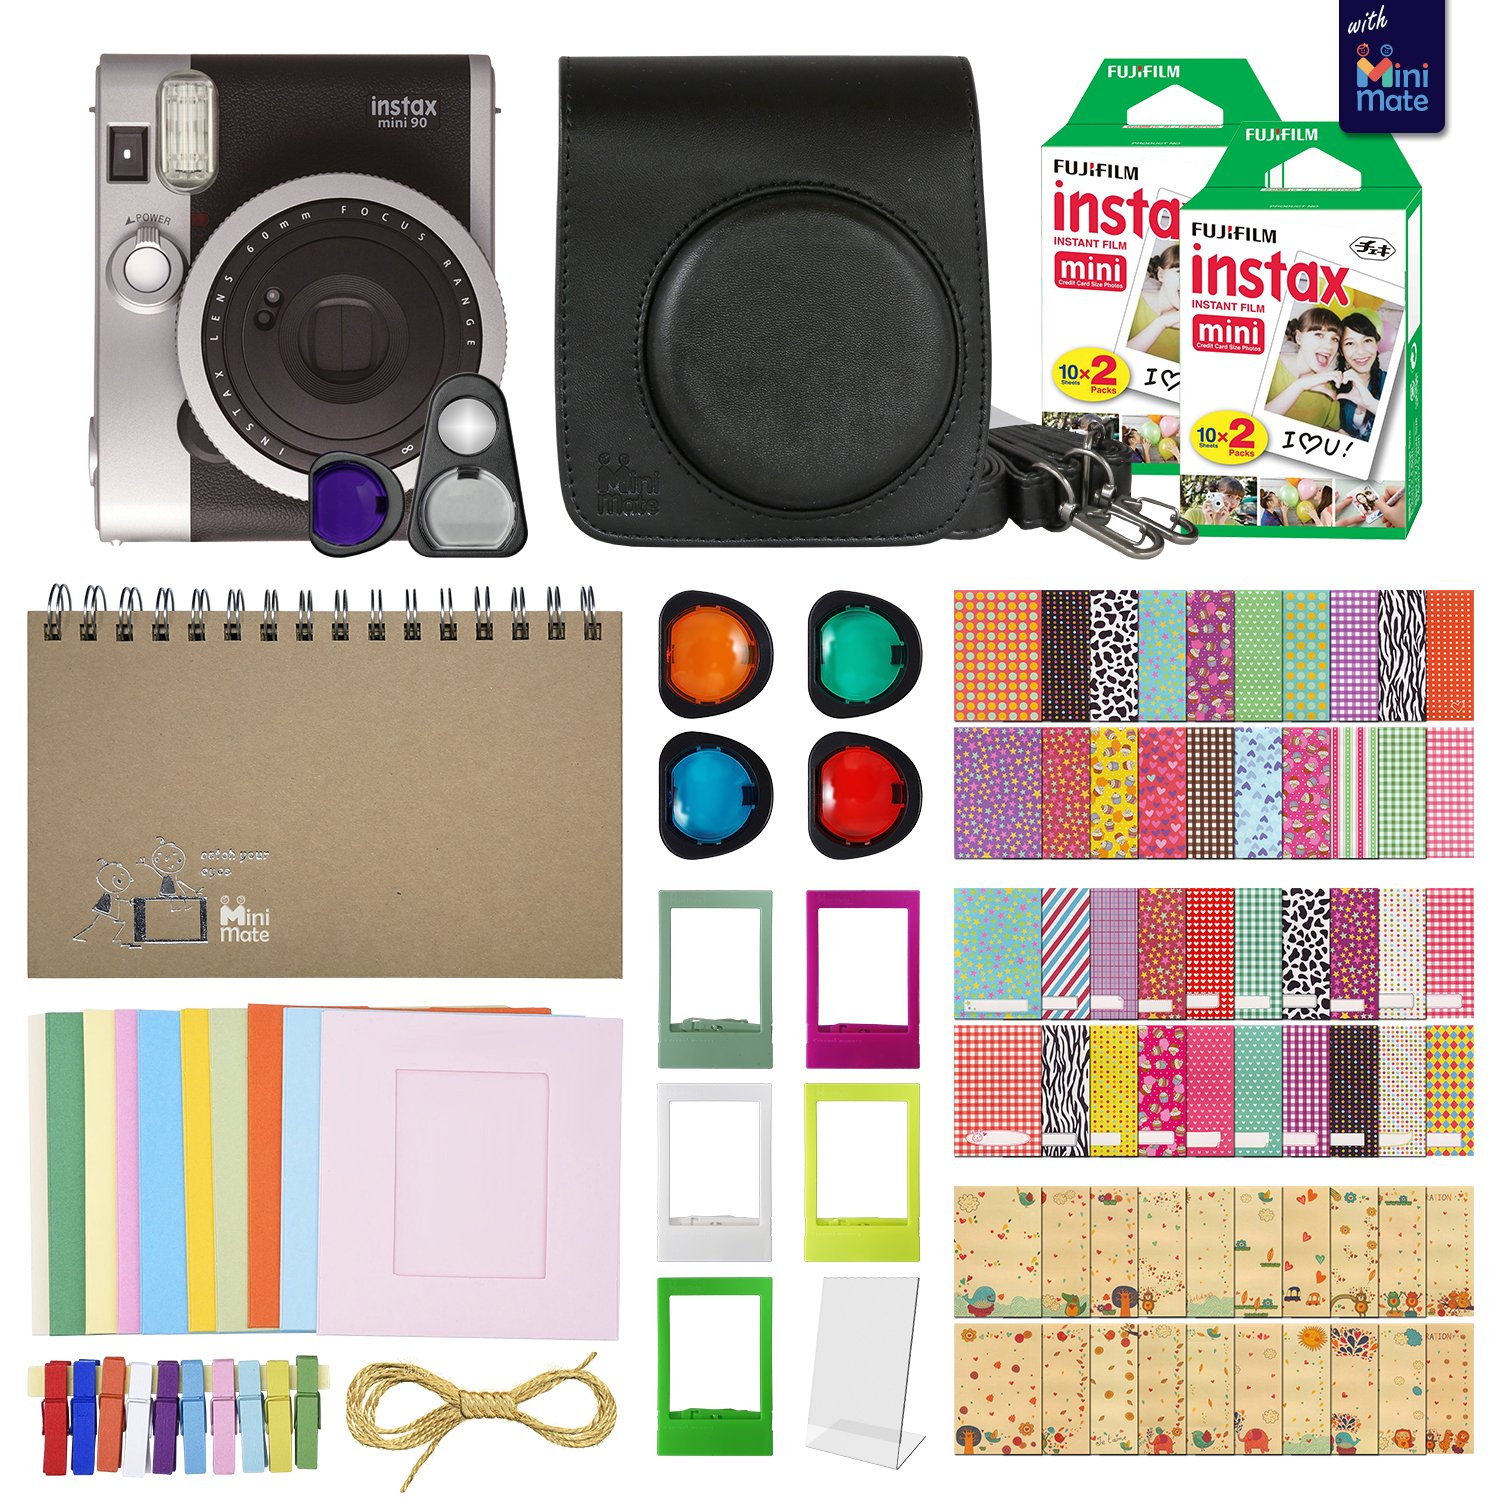 Fujifilm Instax Mini 90 Neo Classic Instant Film Camera (Black) with 40 Instant Film + MiniMate Accessory Bundle. PU Leather Case, Frames, Retro Photo Album, Selfie Lens, Colored Filters and More by MiniMate